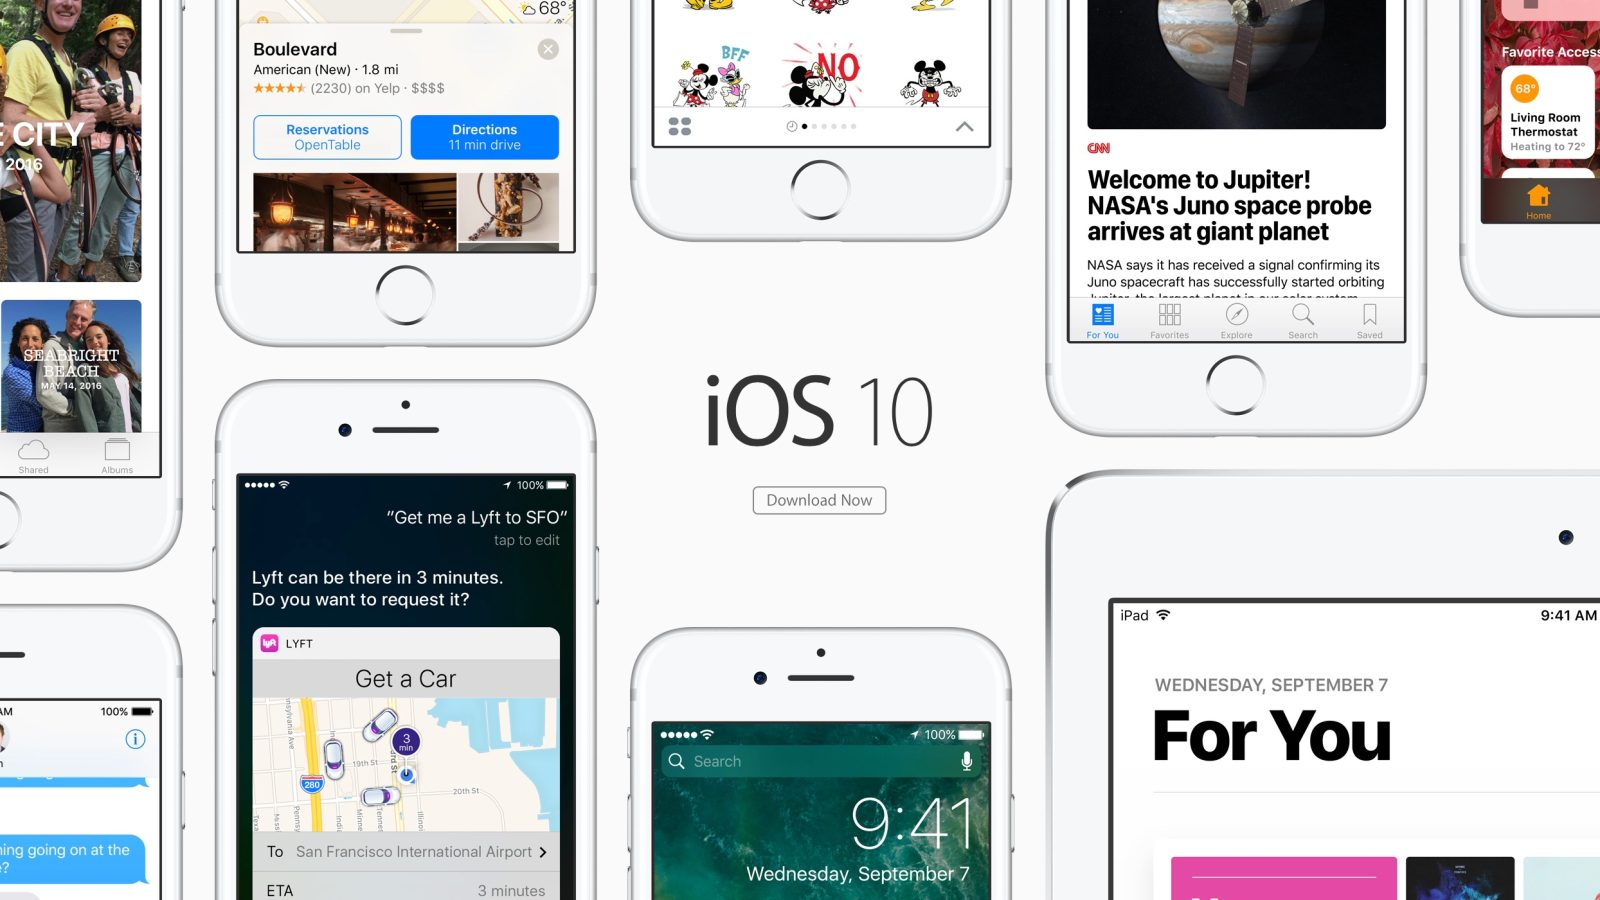 Apple Releases Ios 10 For Iphone Ipad And Ipod Touch To The Public 9to5mac